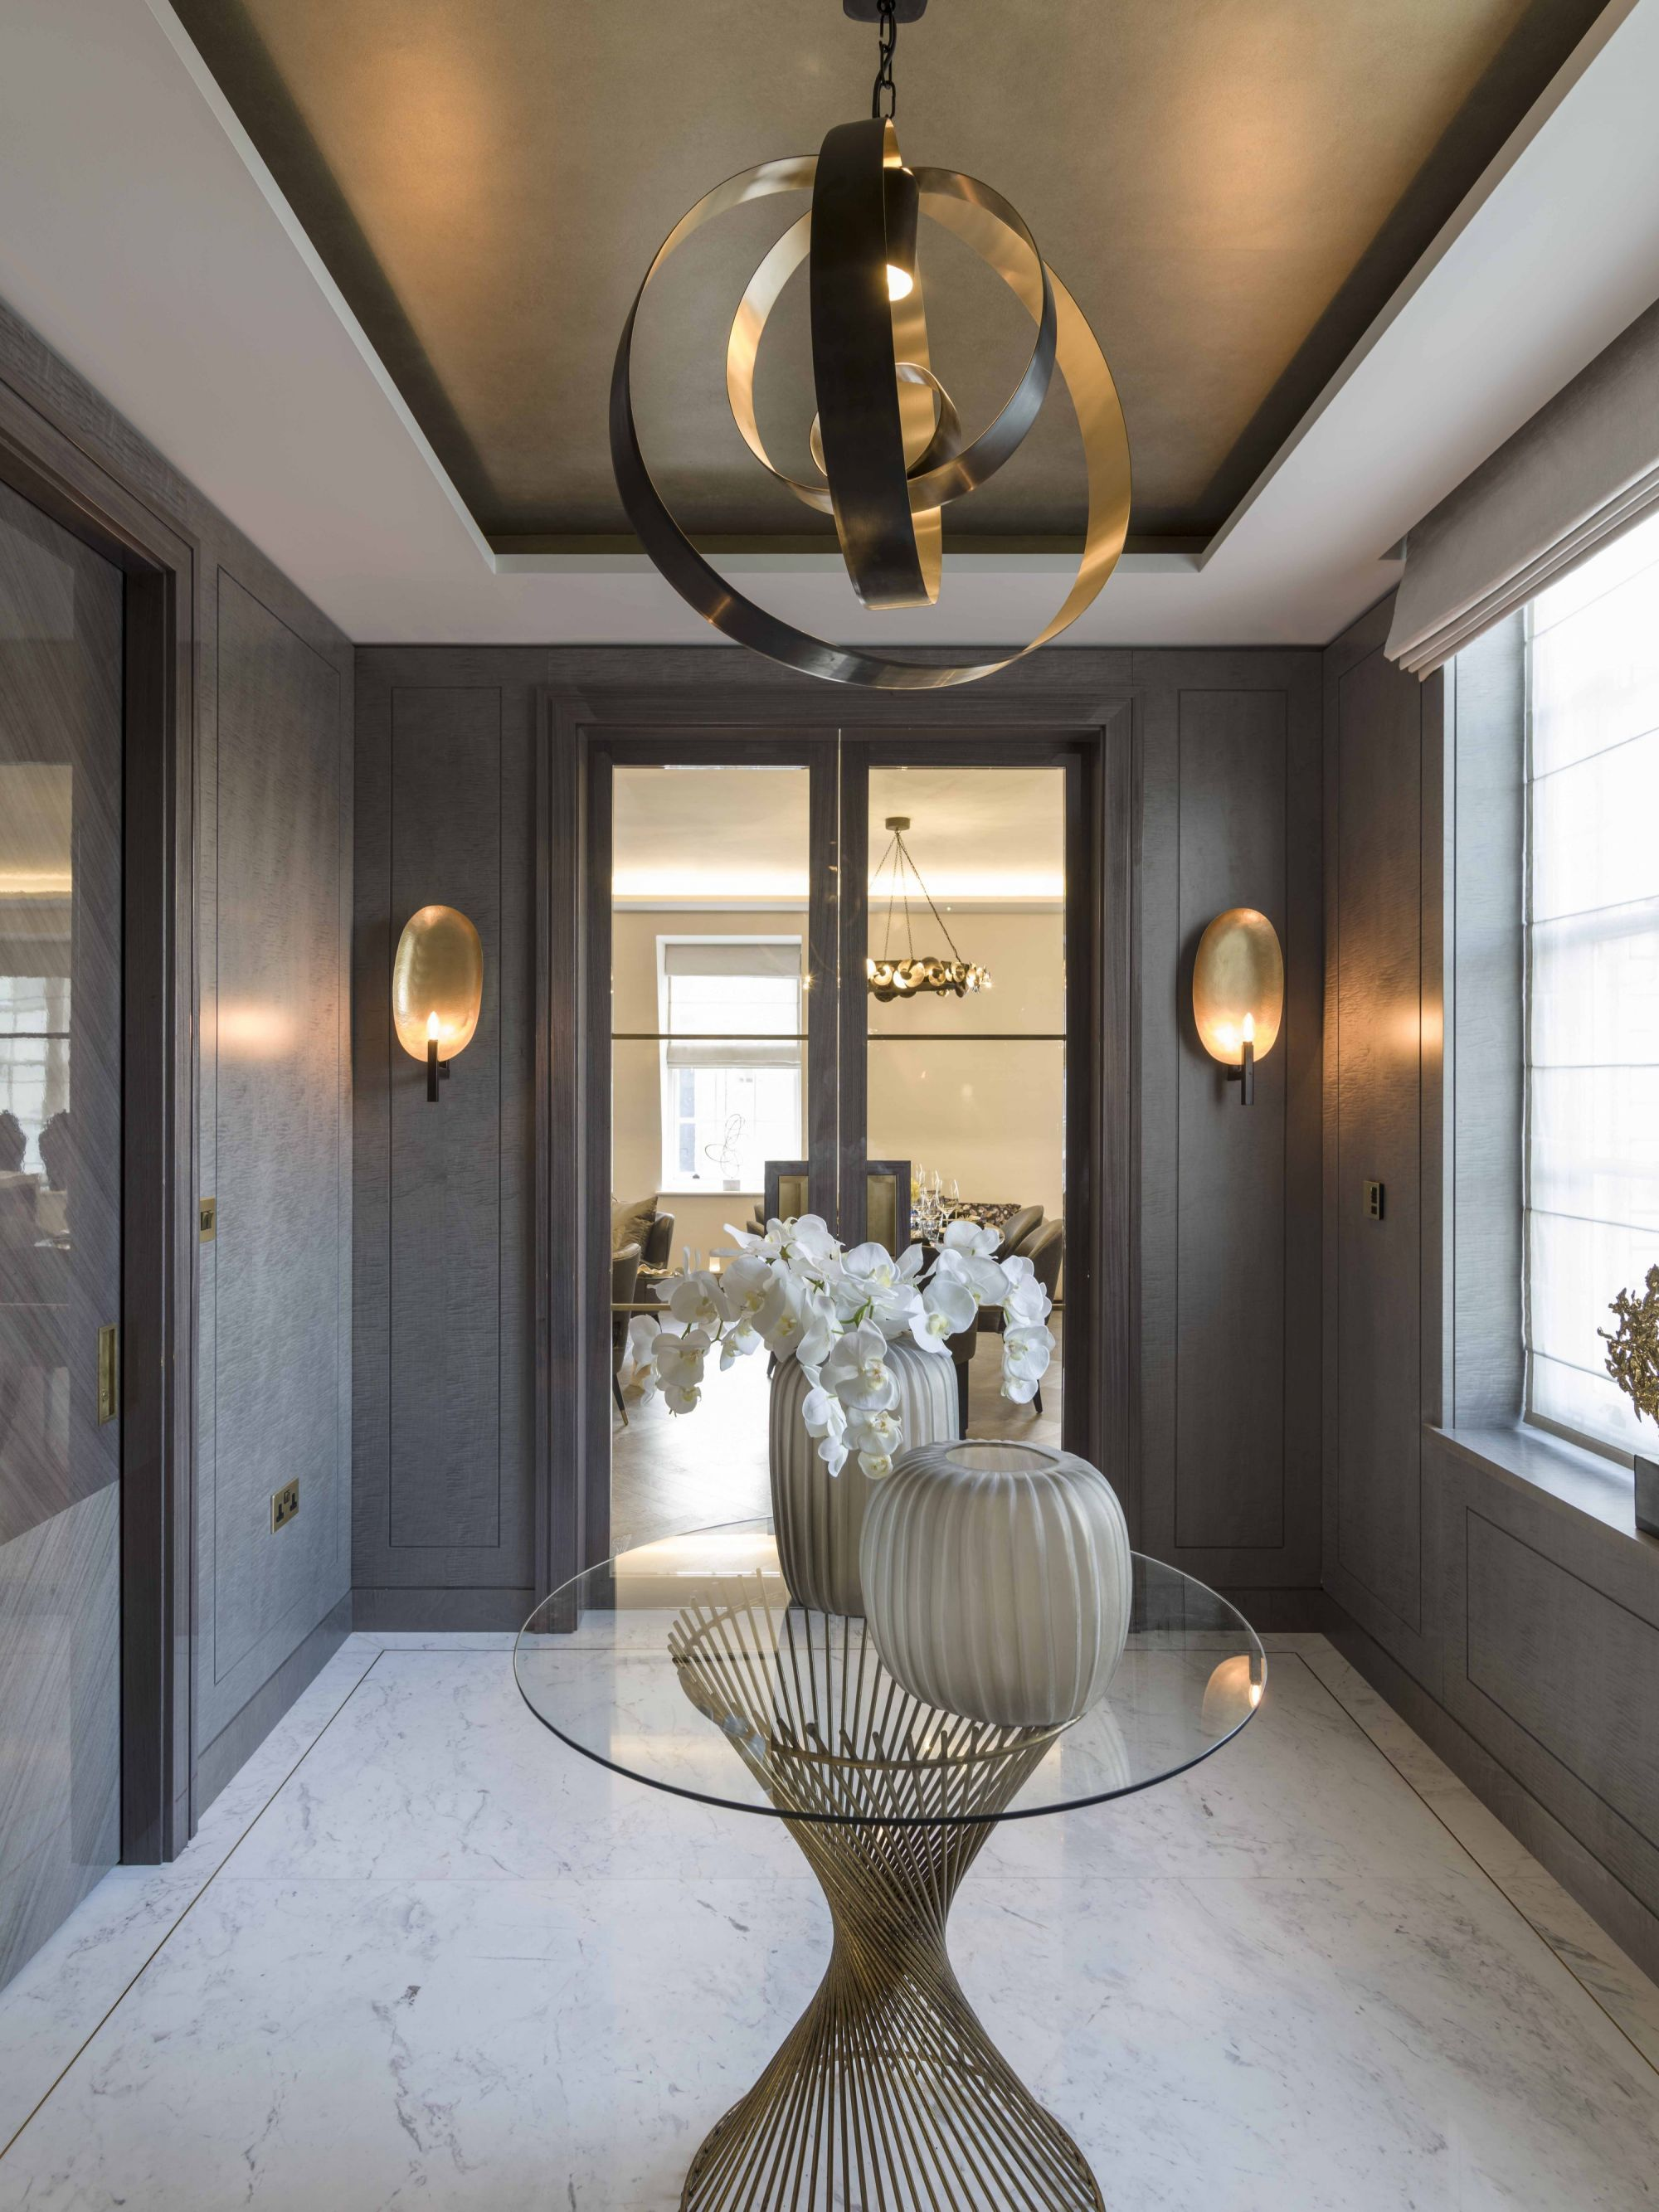 Hot Property: Inside A Luxurious Penthouse In Mayfair